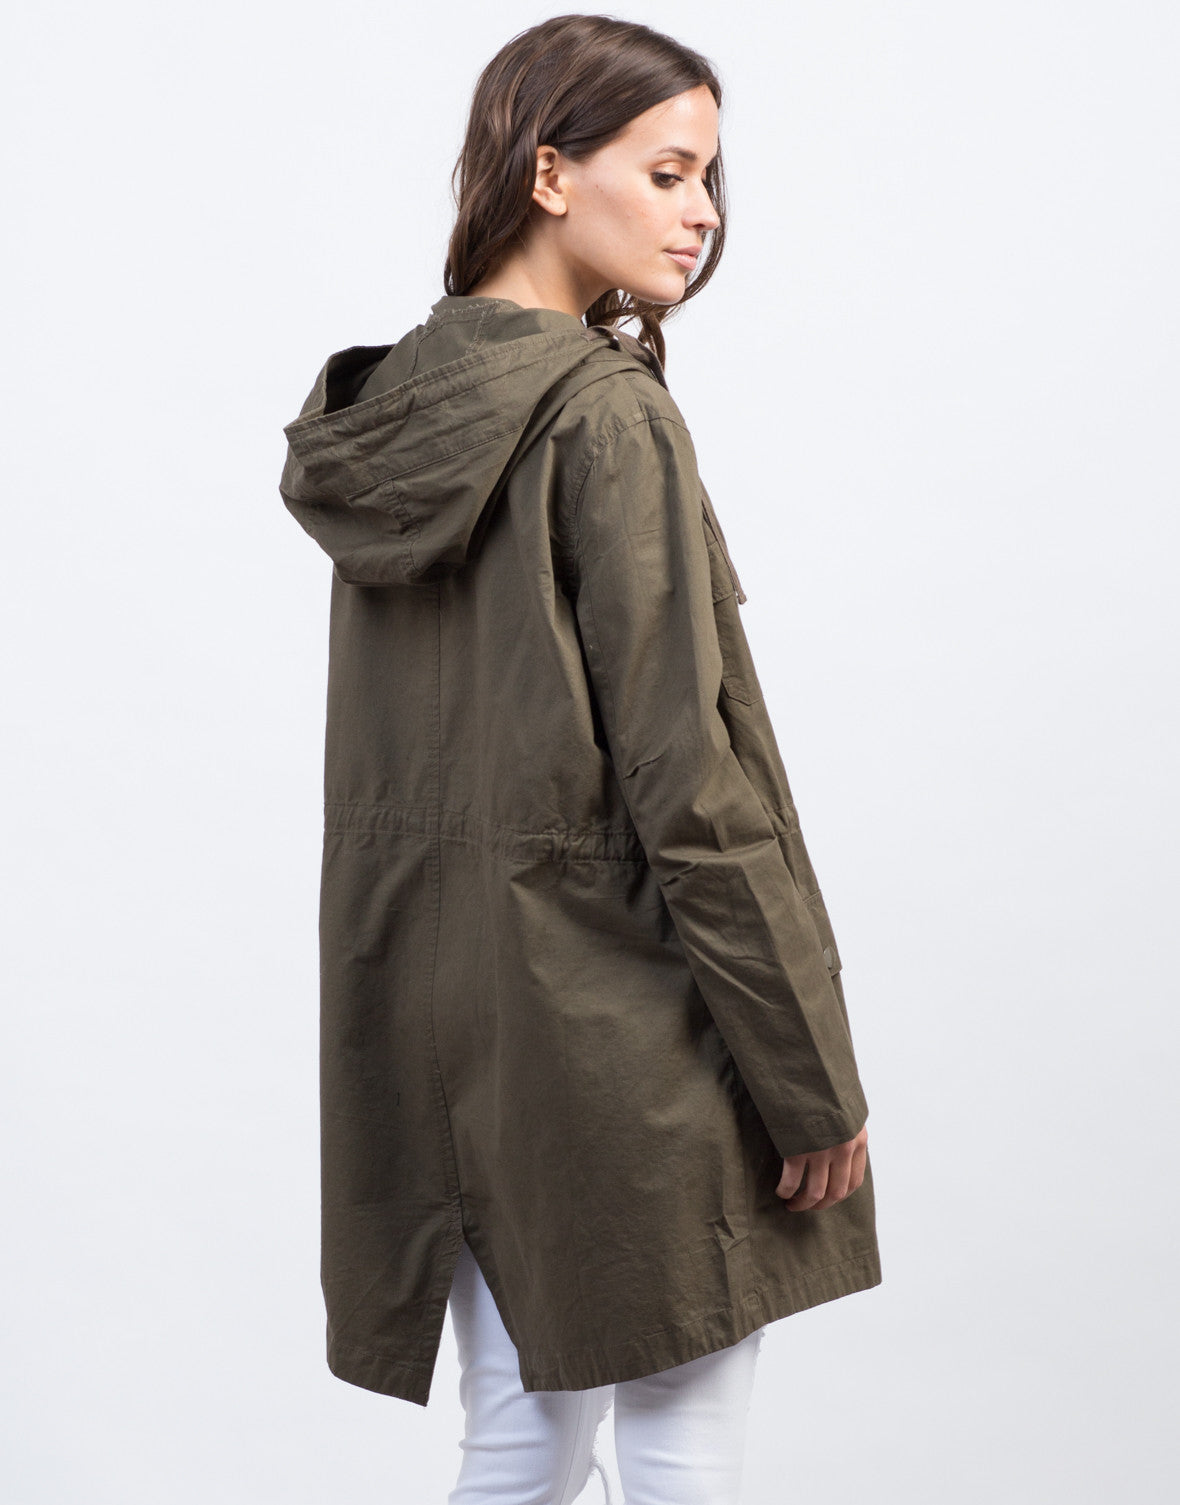 Back View of Army Anorak